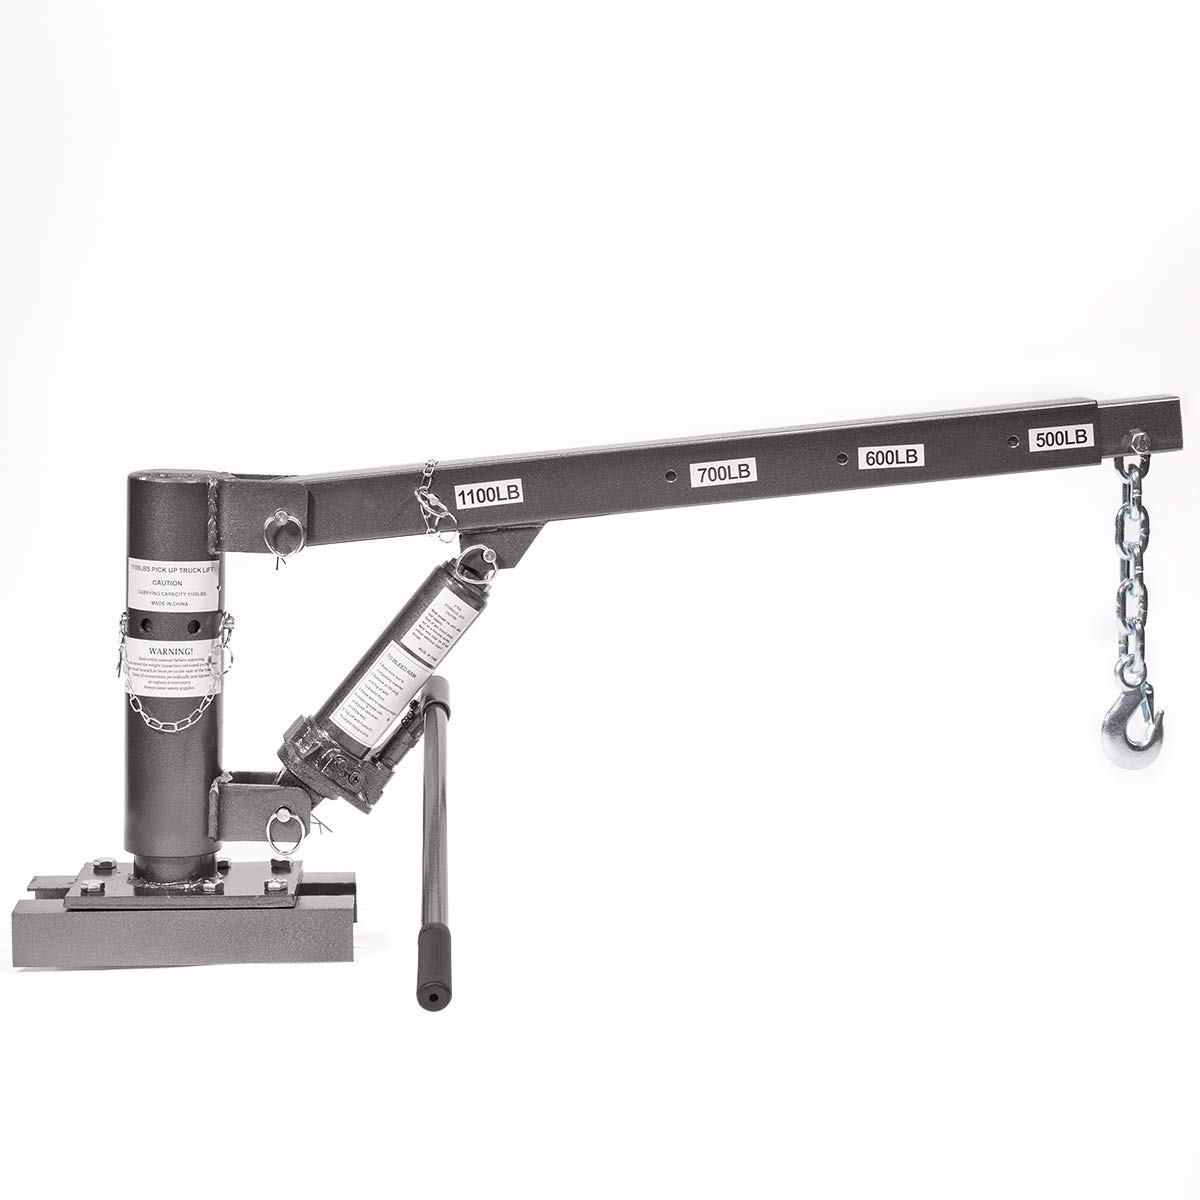 Stark 1/2 Ton Capacity Pickup Truck Extra Lift Hoist Load Crane Telescopic 1100lbs Extension Lock Position Swivel Base by Stark USA